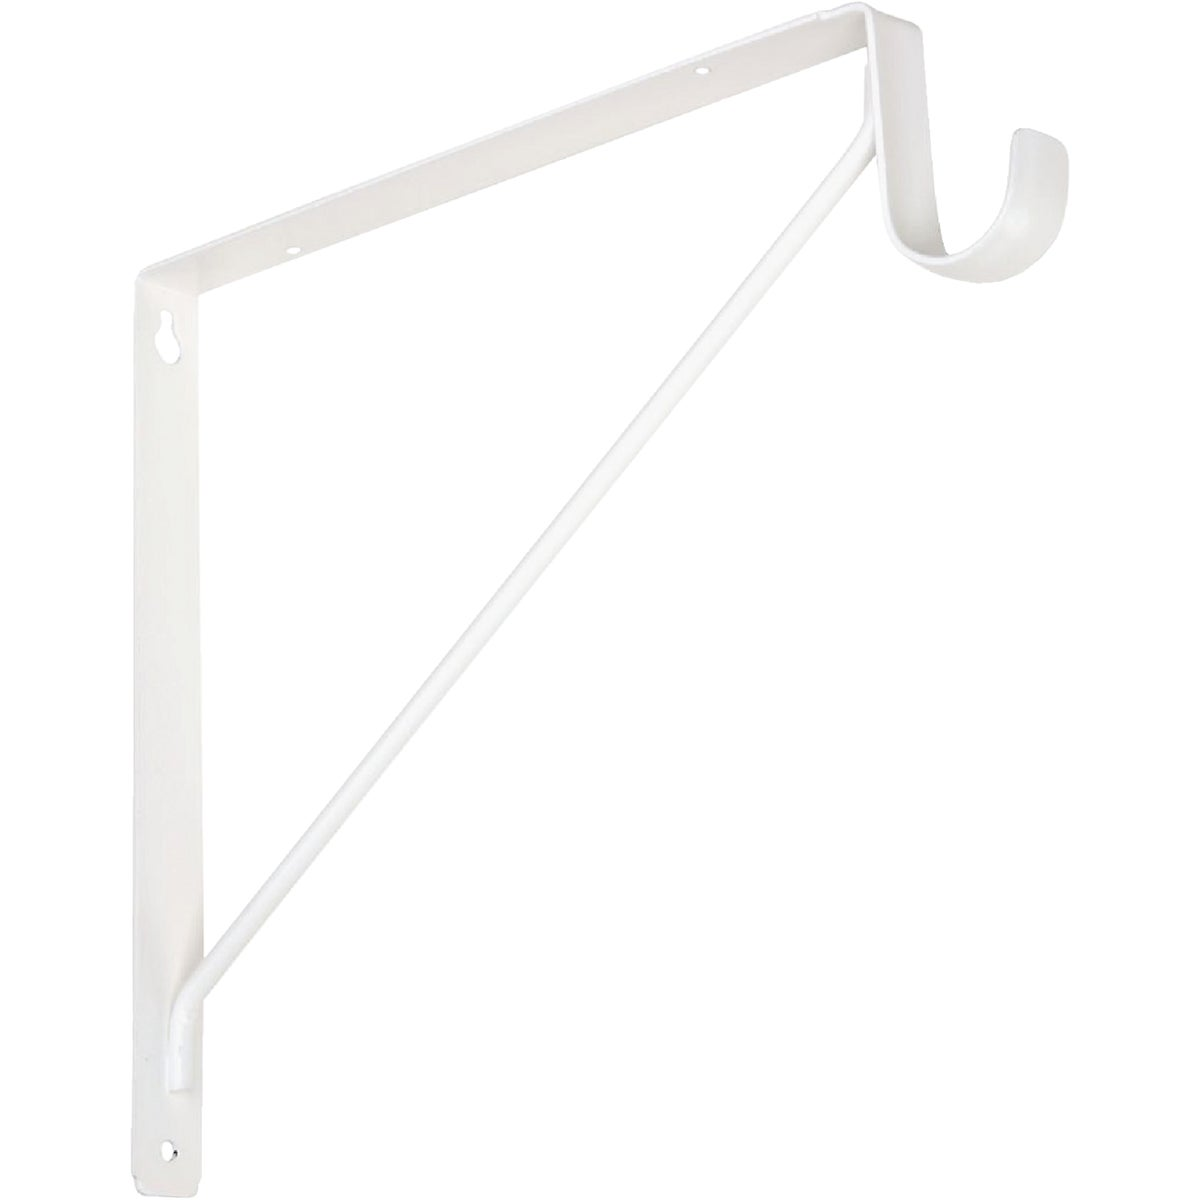 WHT SHELF & ROD BRACKET - N224428 by National Mfg Co